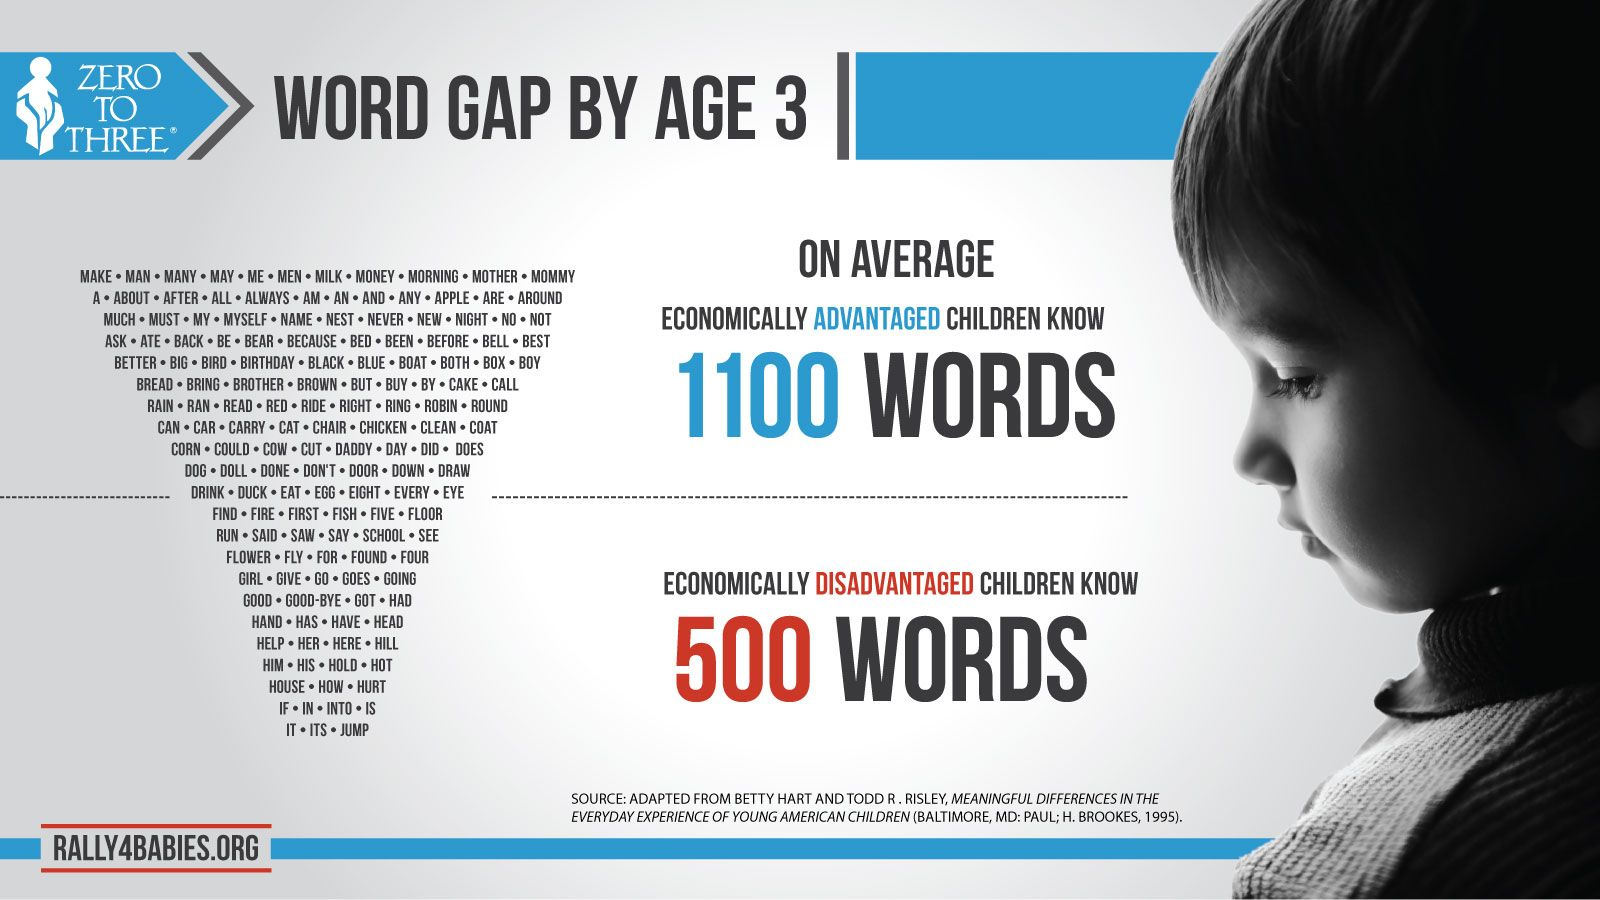 The Word Gap Experienced By Economically Disadvantaged